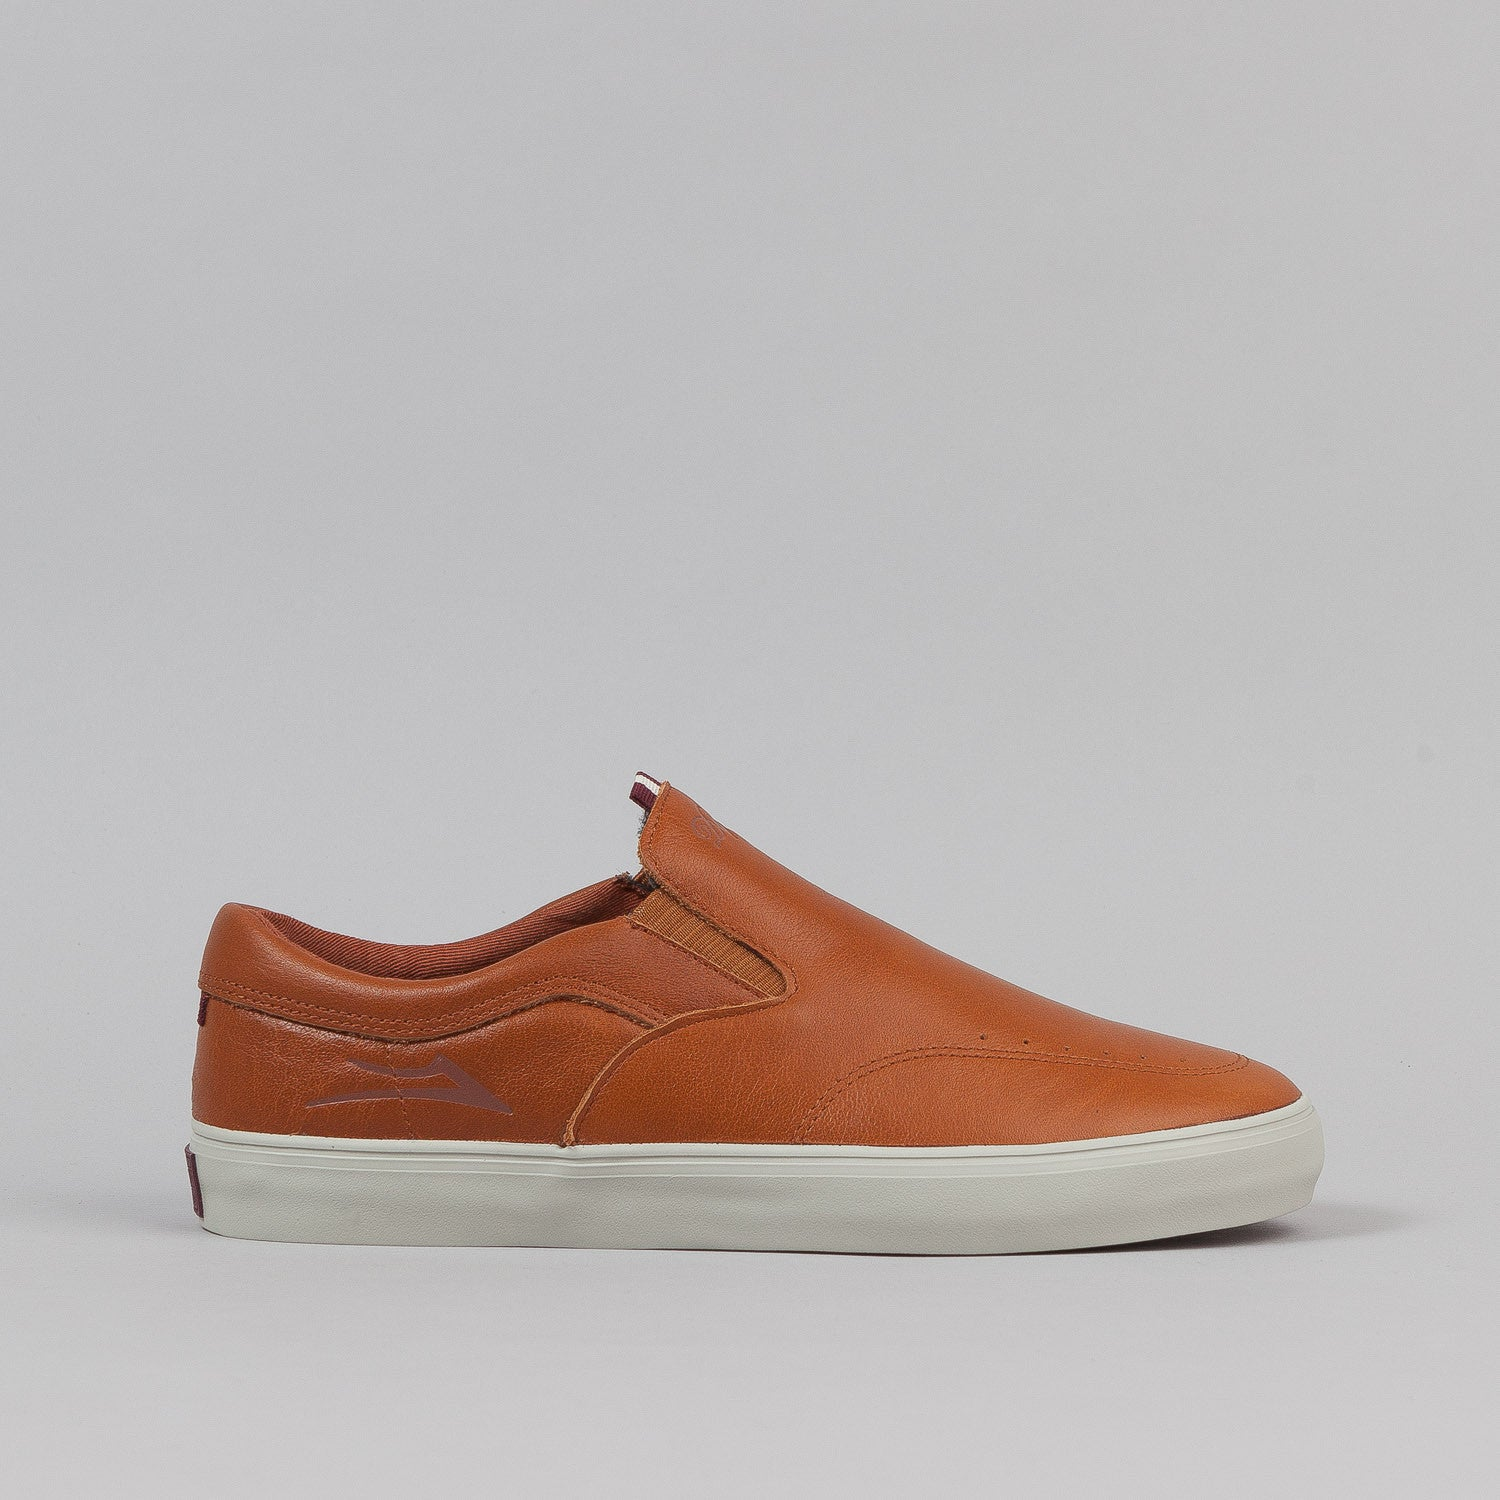 Lakai X DQM Owen Echelon Shoes